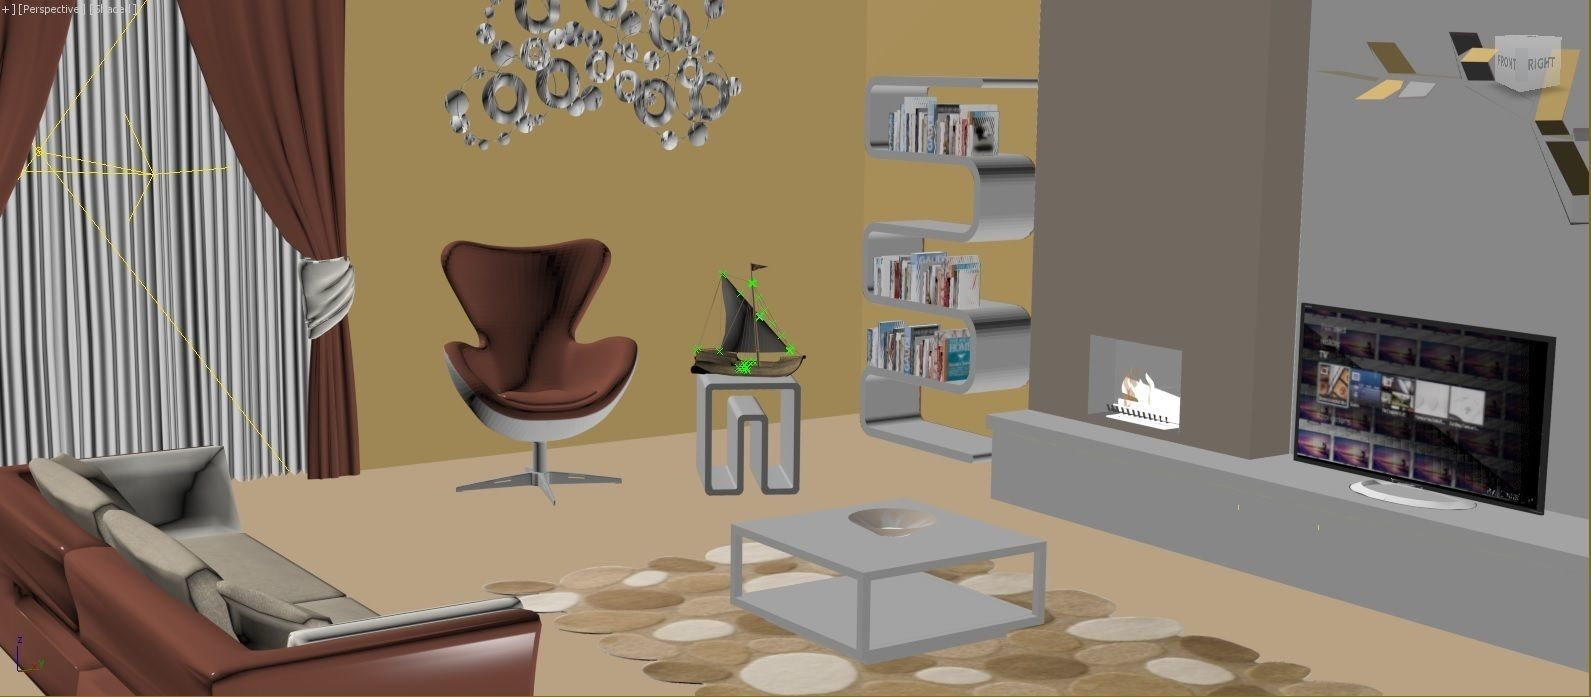 Interior design living room 3d model buy interior design 3d room interior